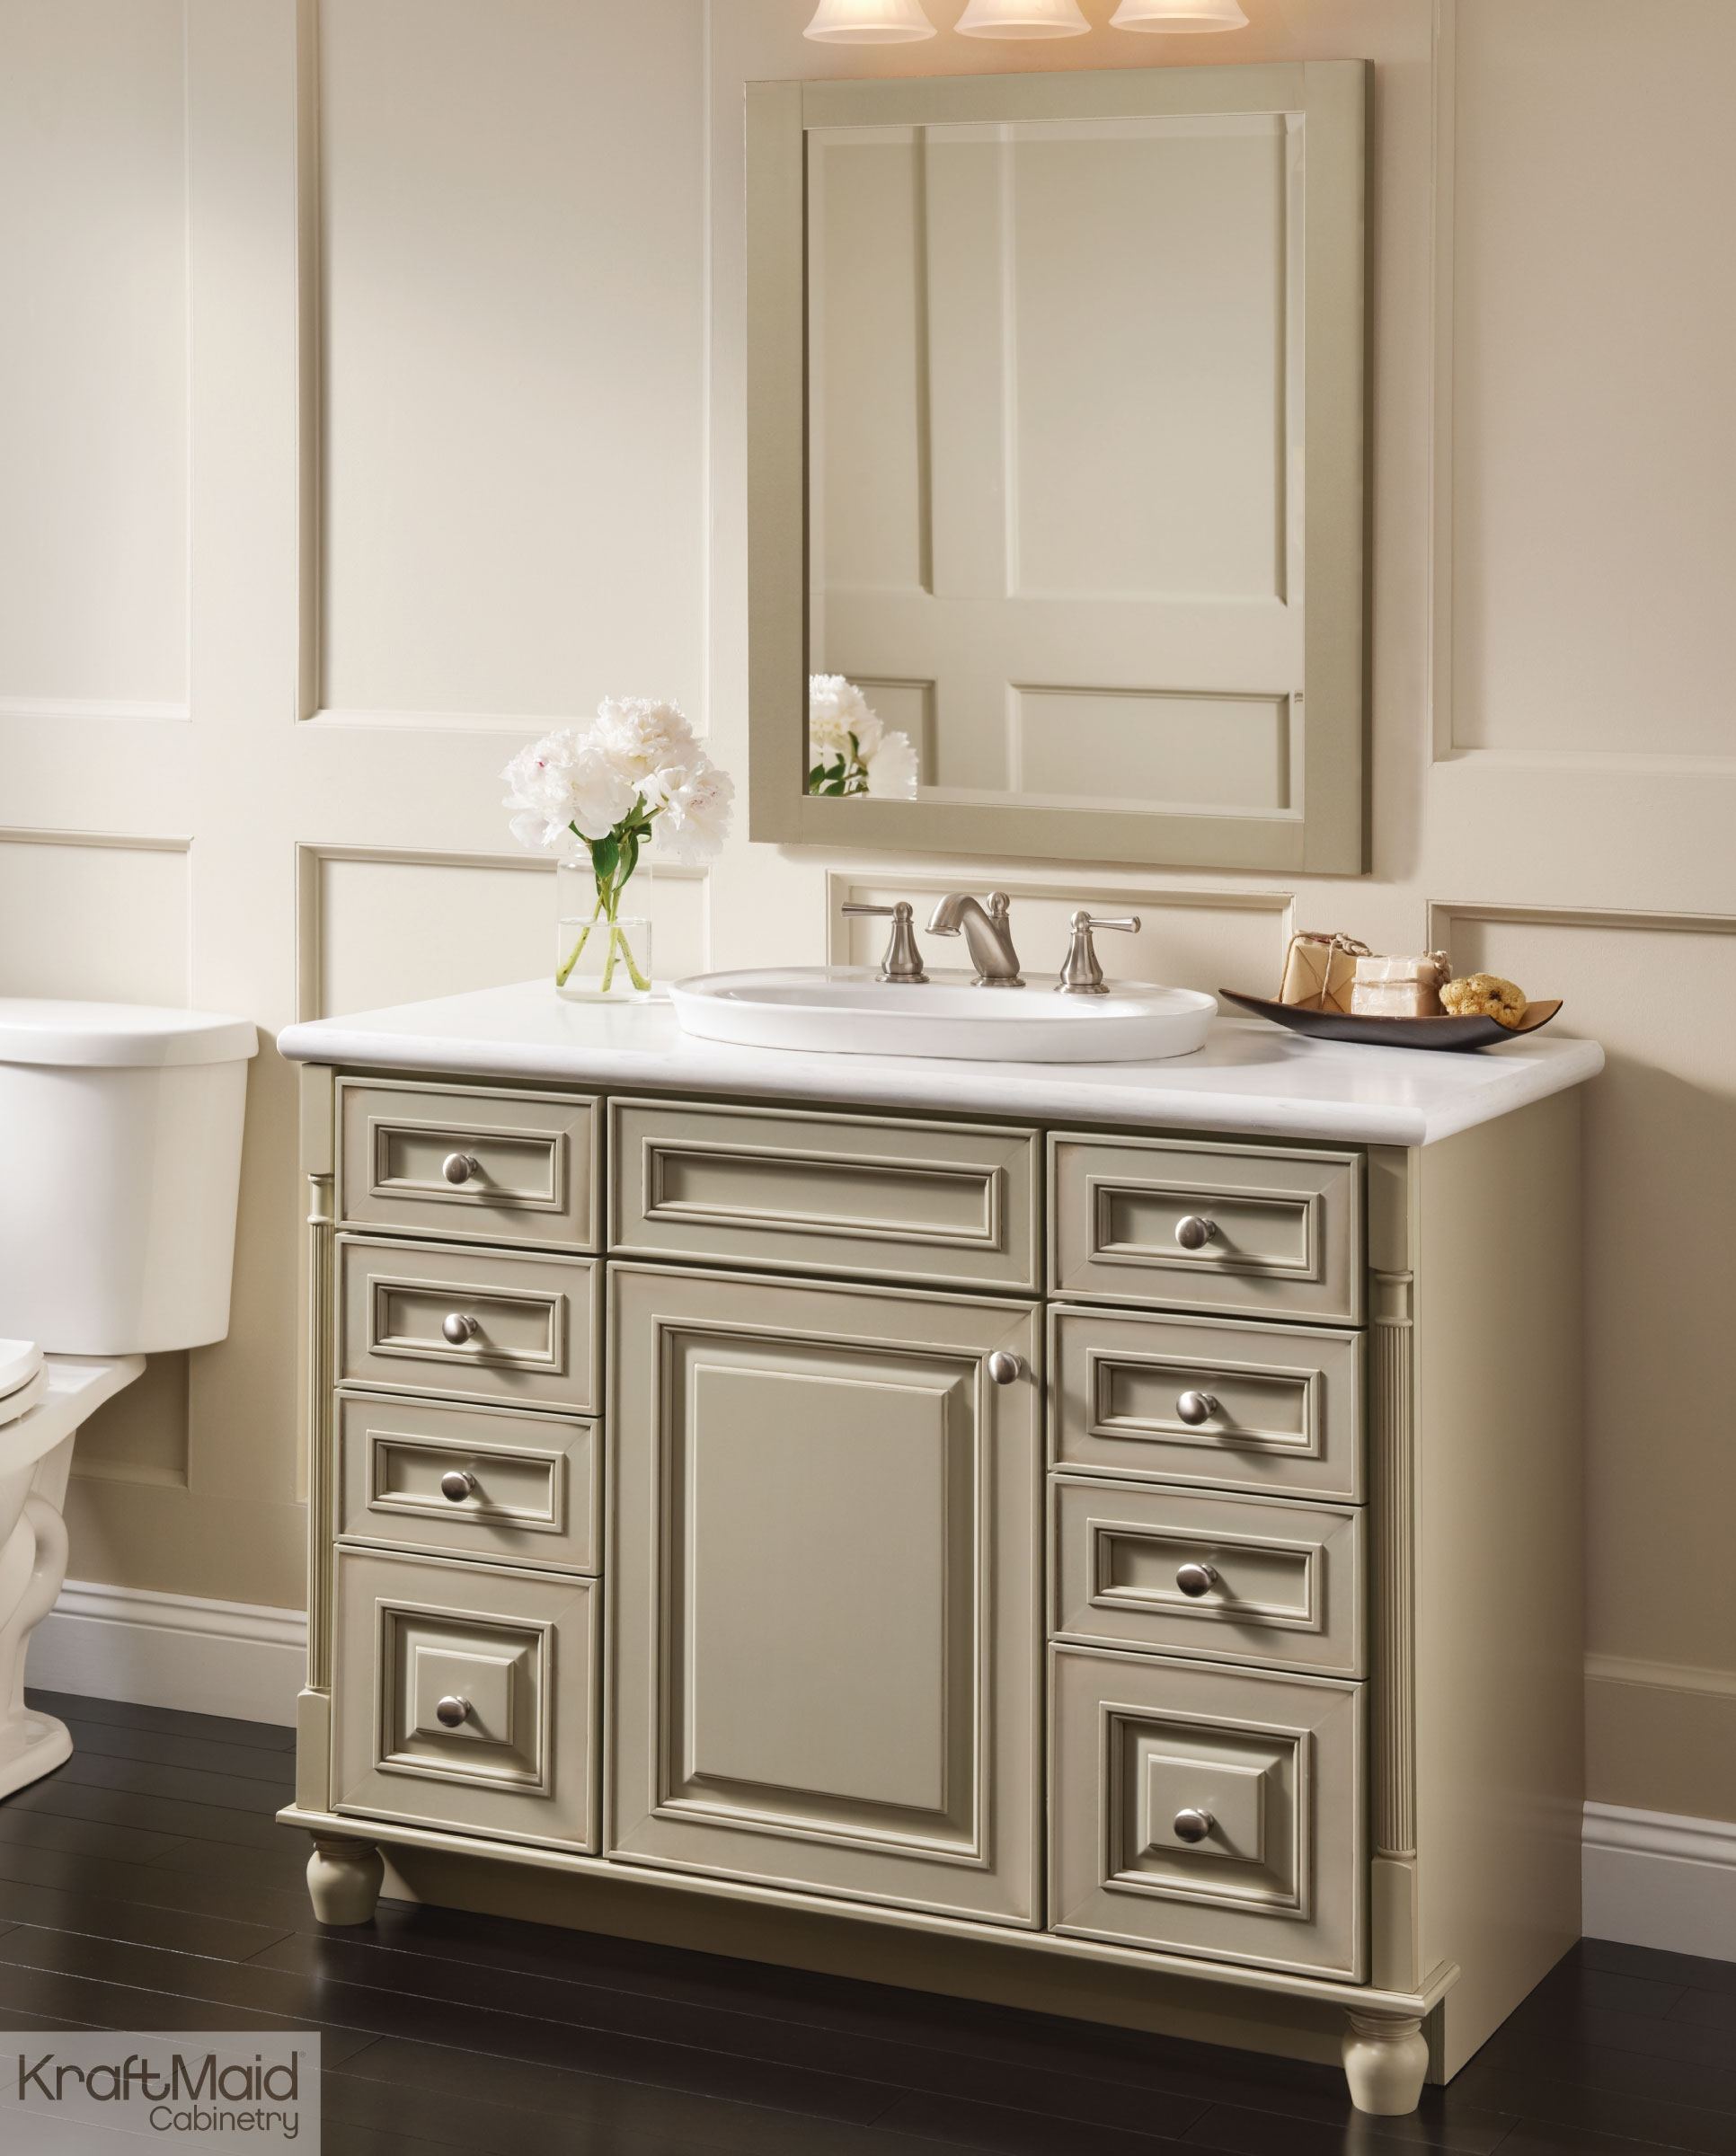 Kraftmaid Bathroom Wall Cabinets